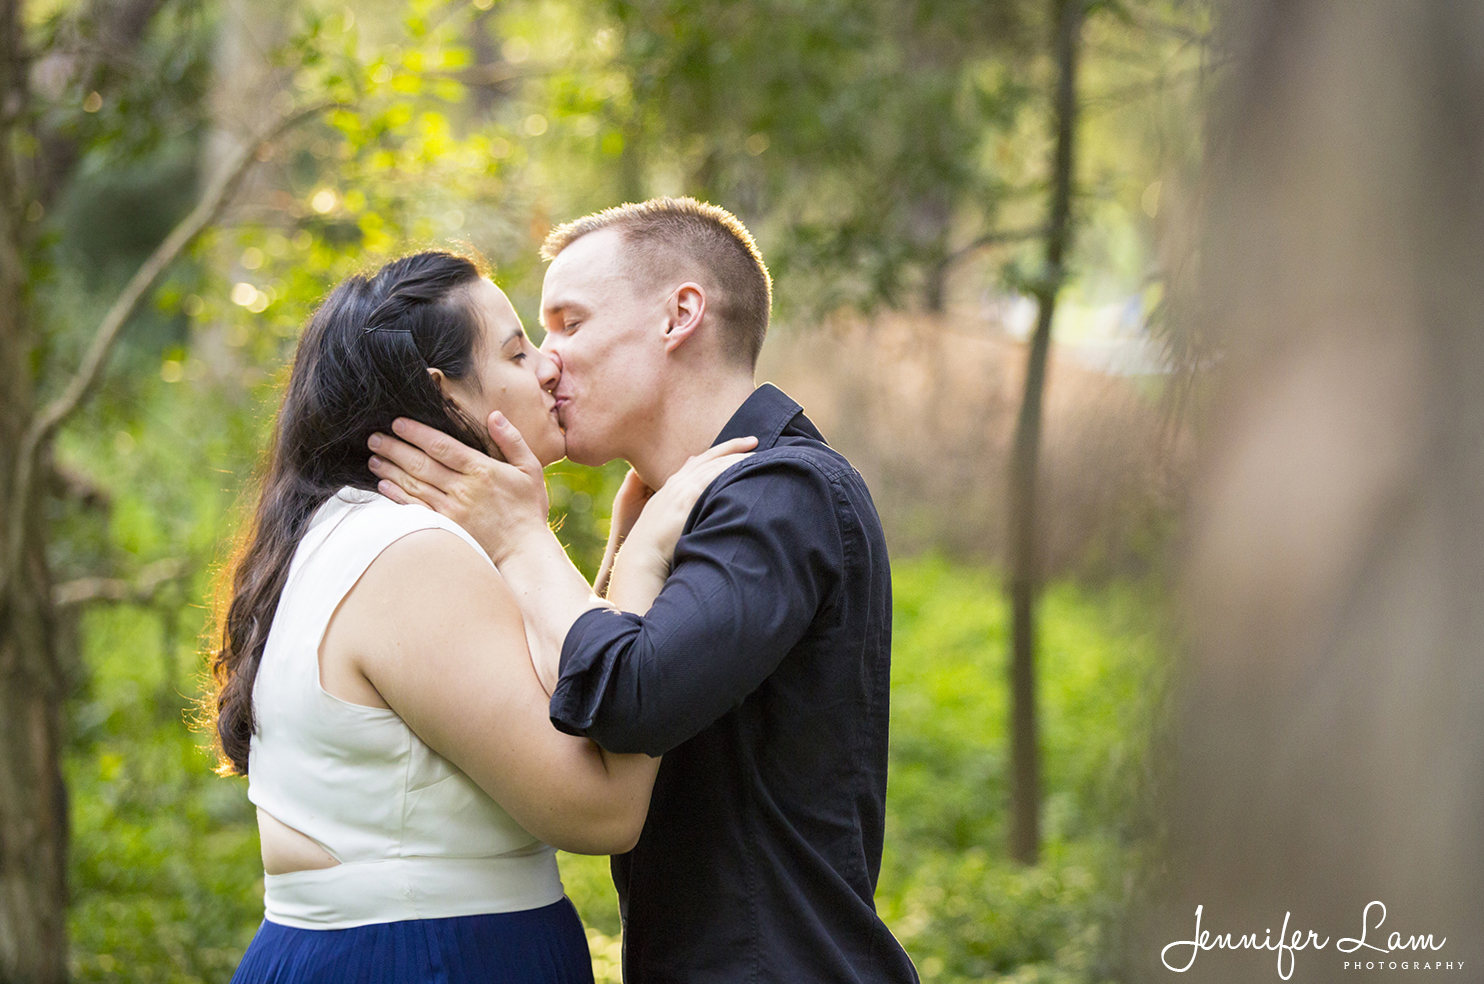 Engagement Session - Sydney Wedding Photographer - Jennifer Lam Photography (11).jpg